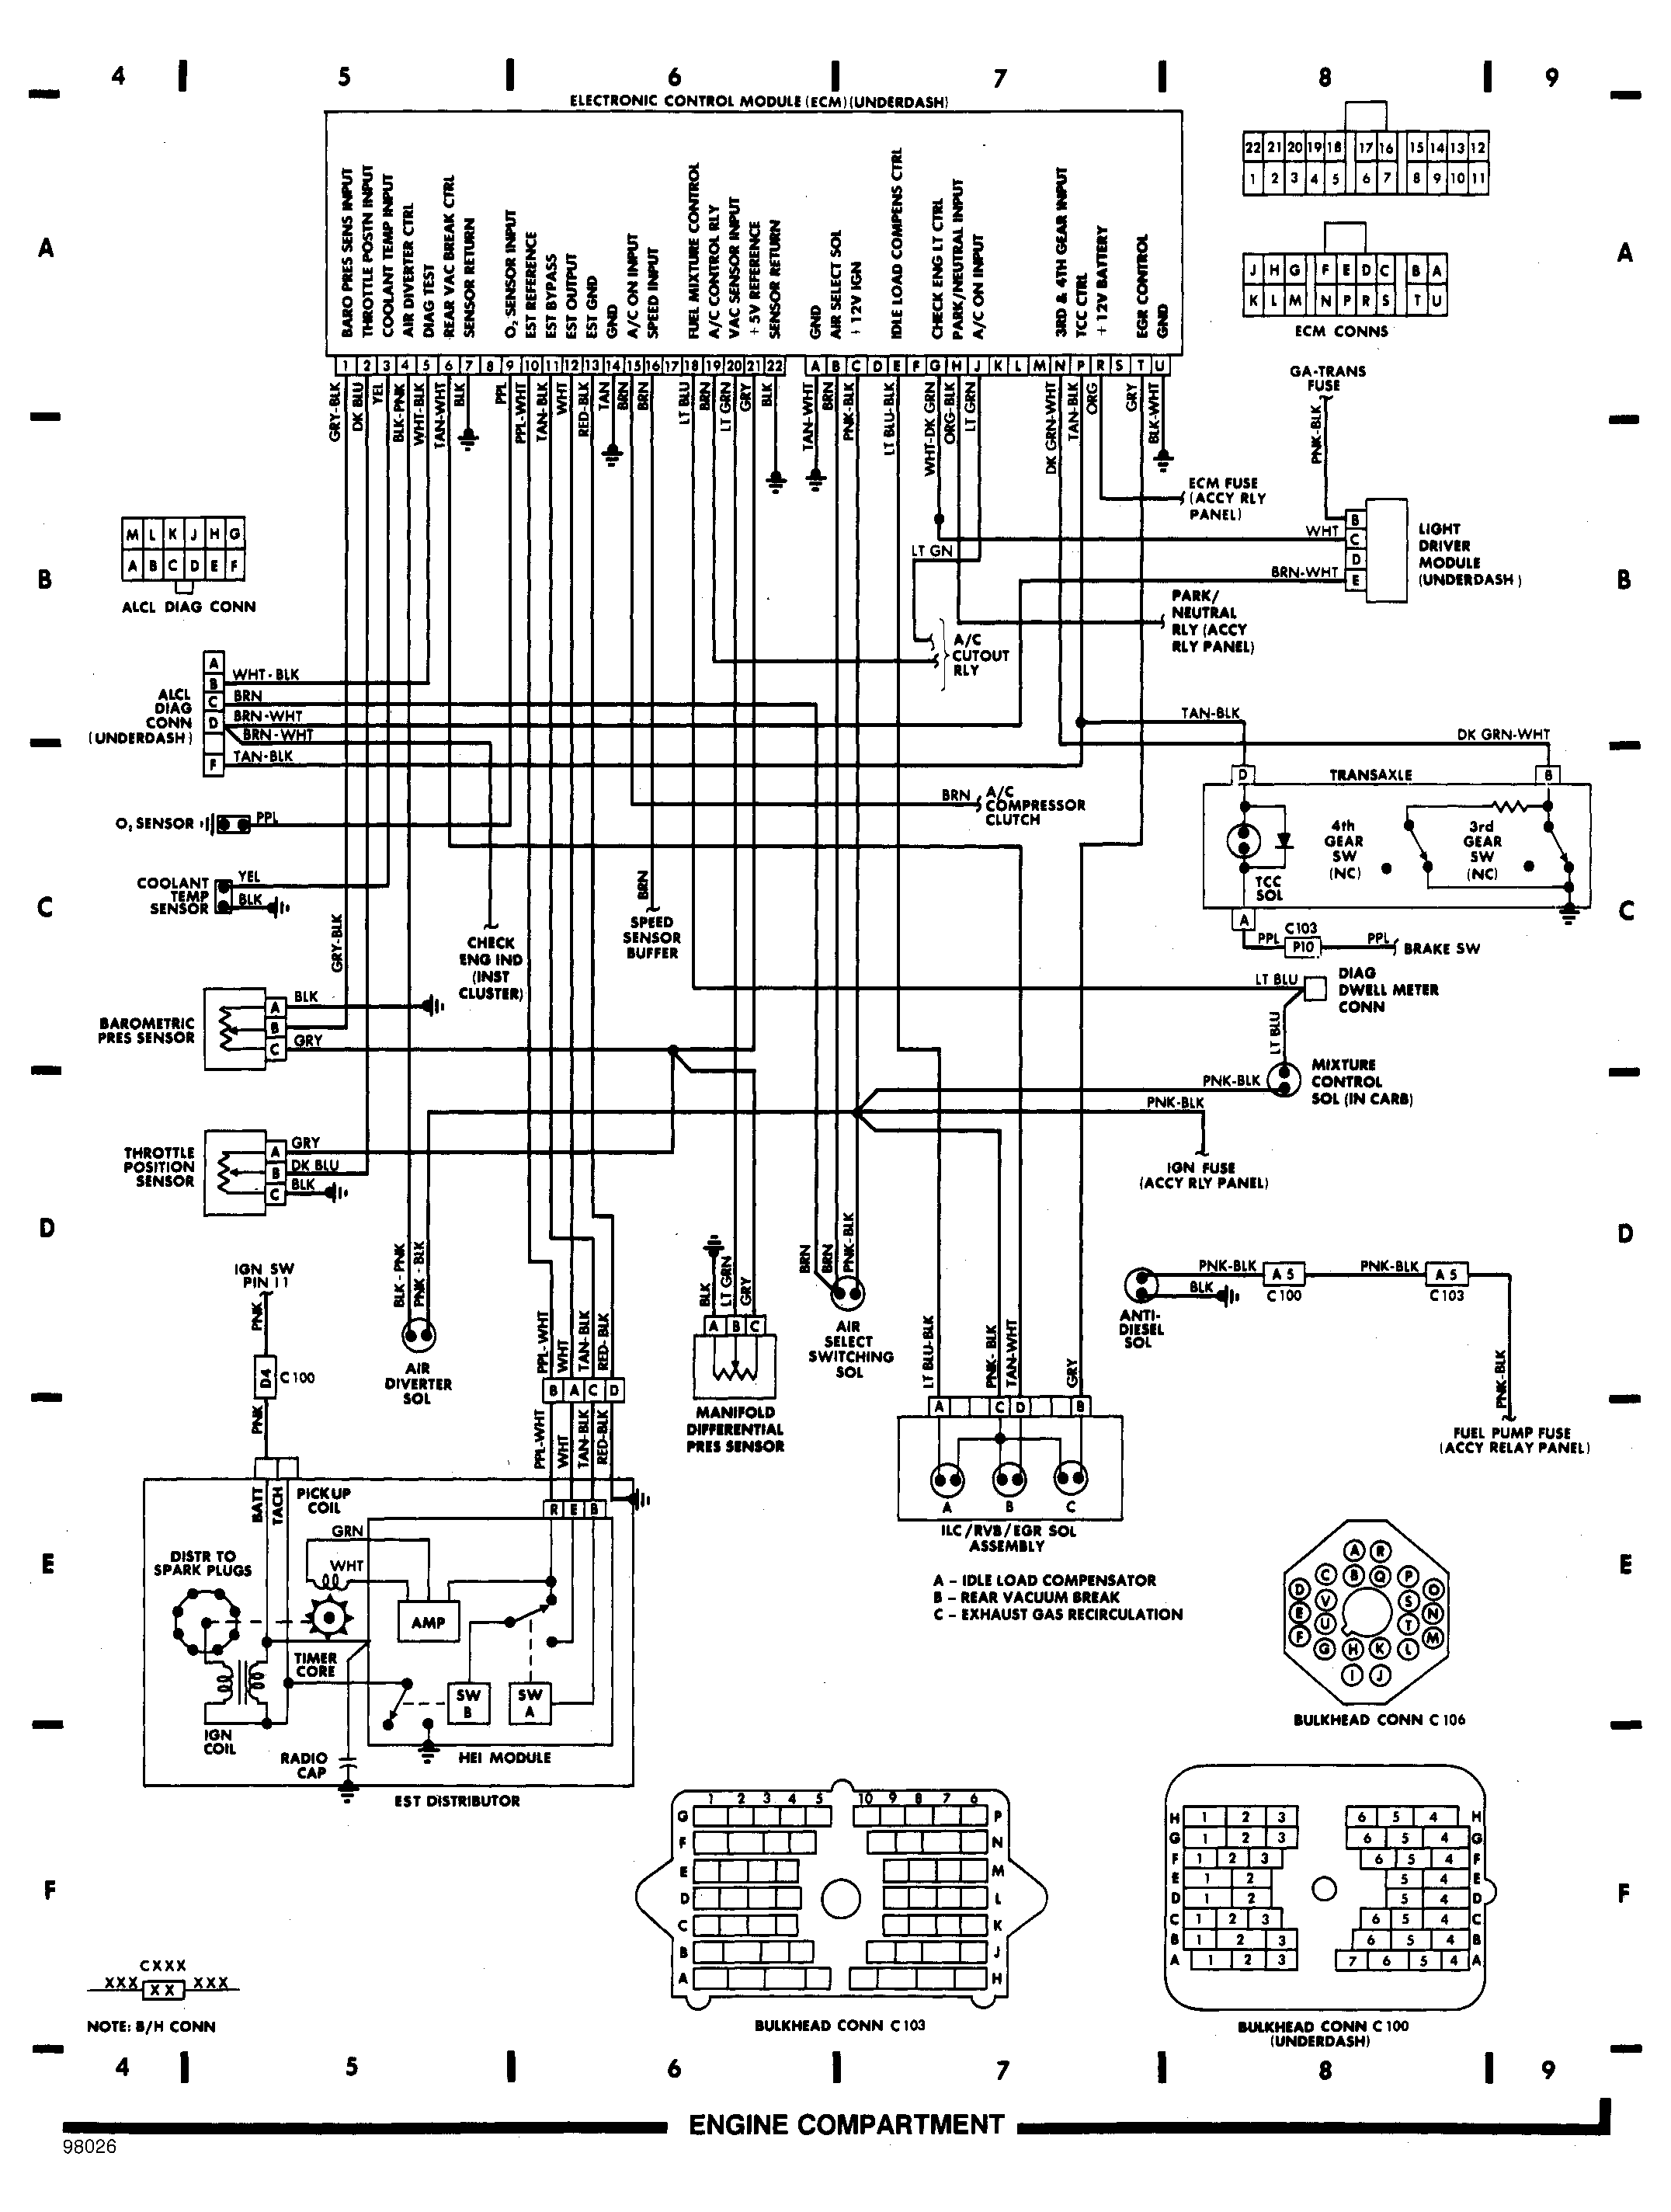 Cadillac Wiring Diagrams Worksheet And Diagram 1958 Rh Cadillacresource Com 1966